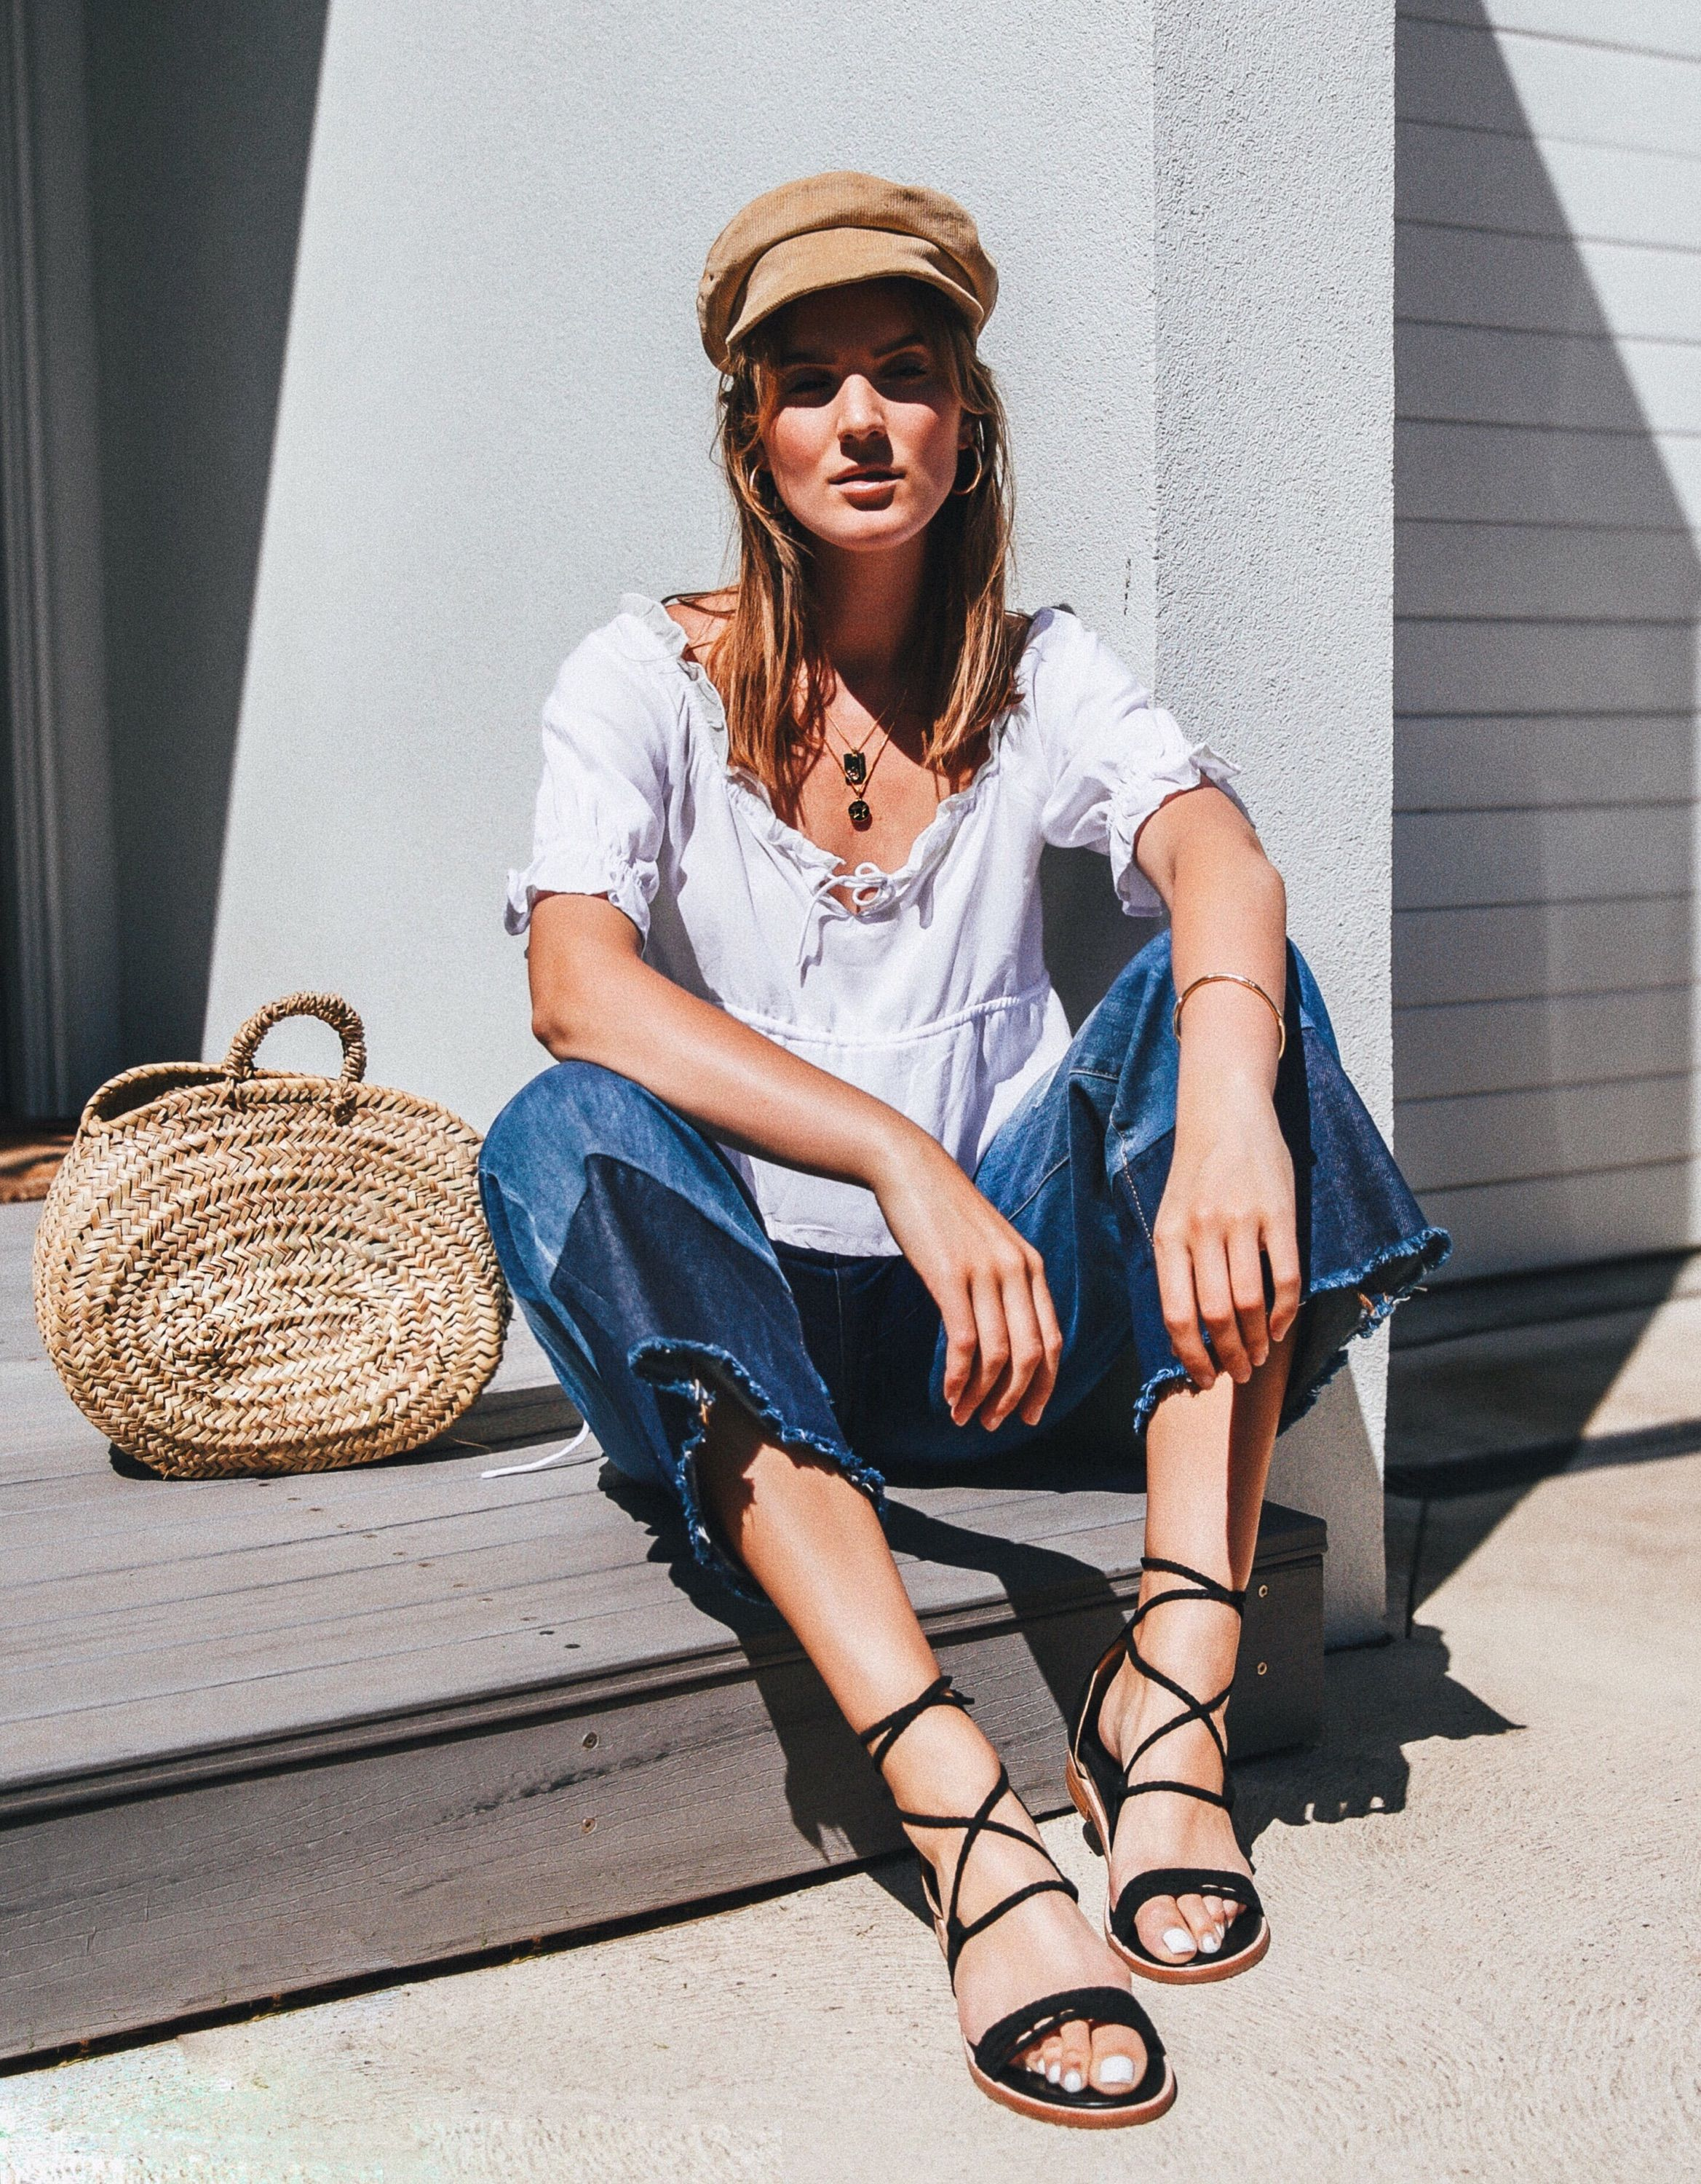 Bared_Footwear_Holly_Titheridge_Womens_Galah_Black_Leather_Lace_Up_Sandals